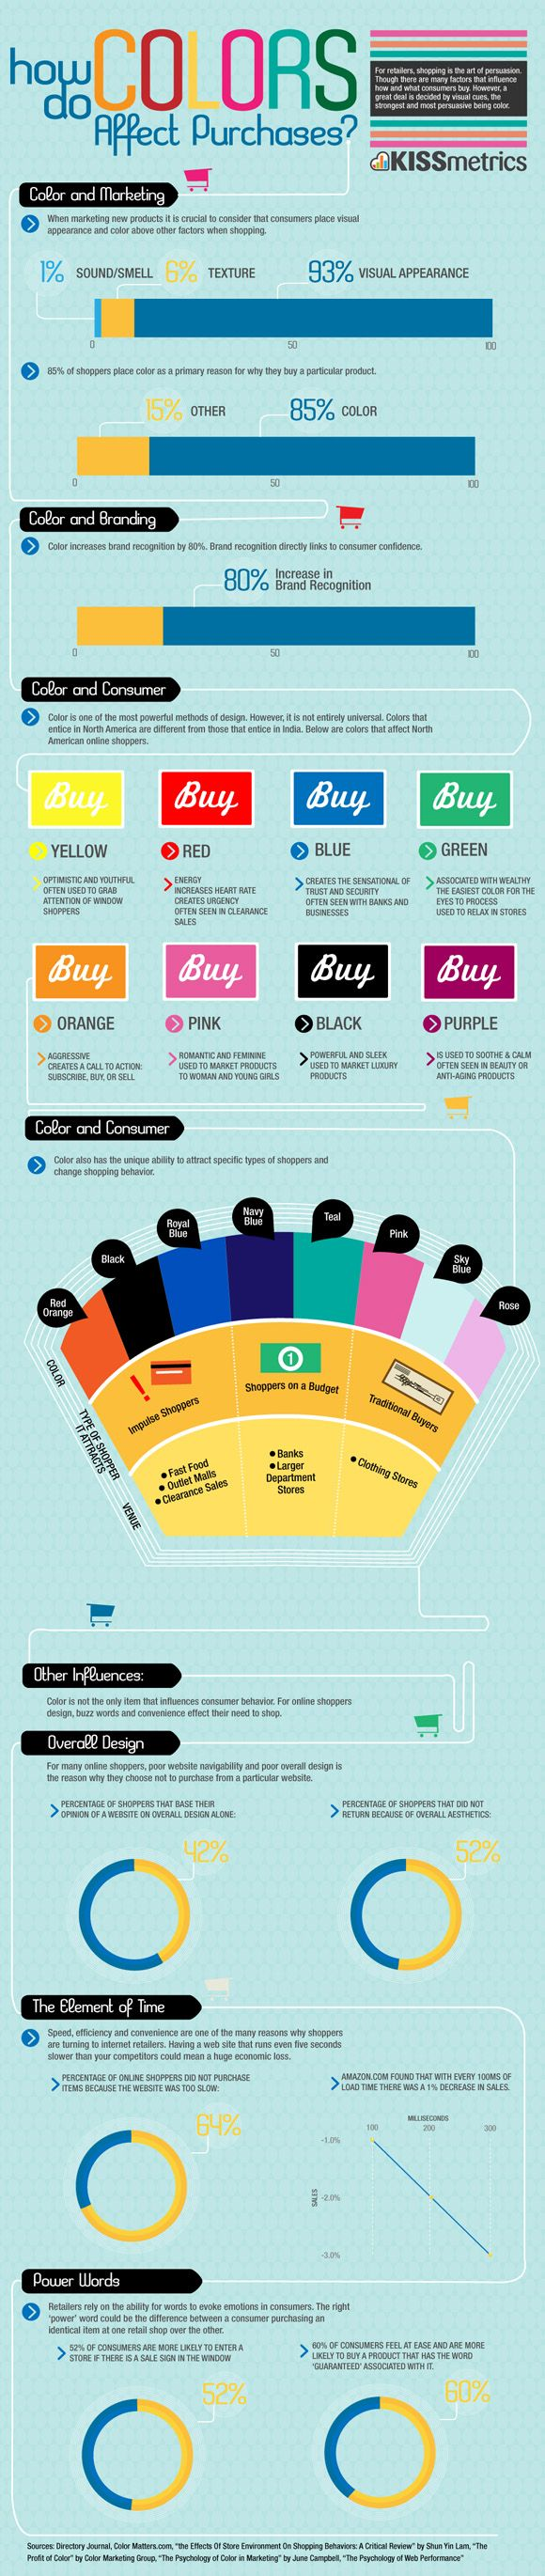 The Power of Color!! How do Colors Affect Purchases?[Infographic]